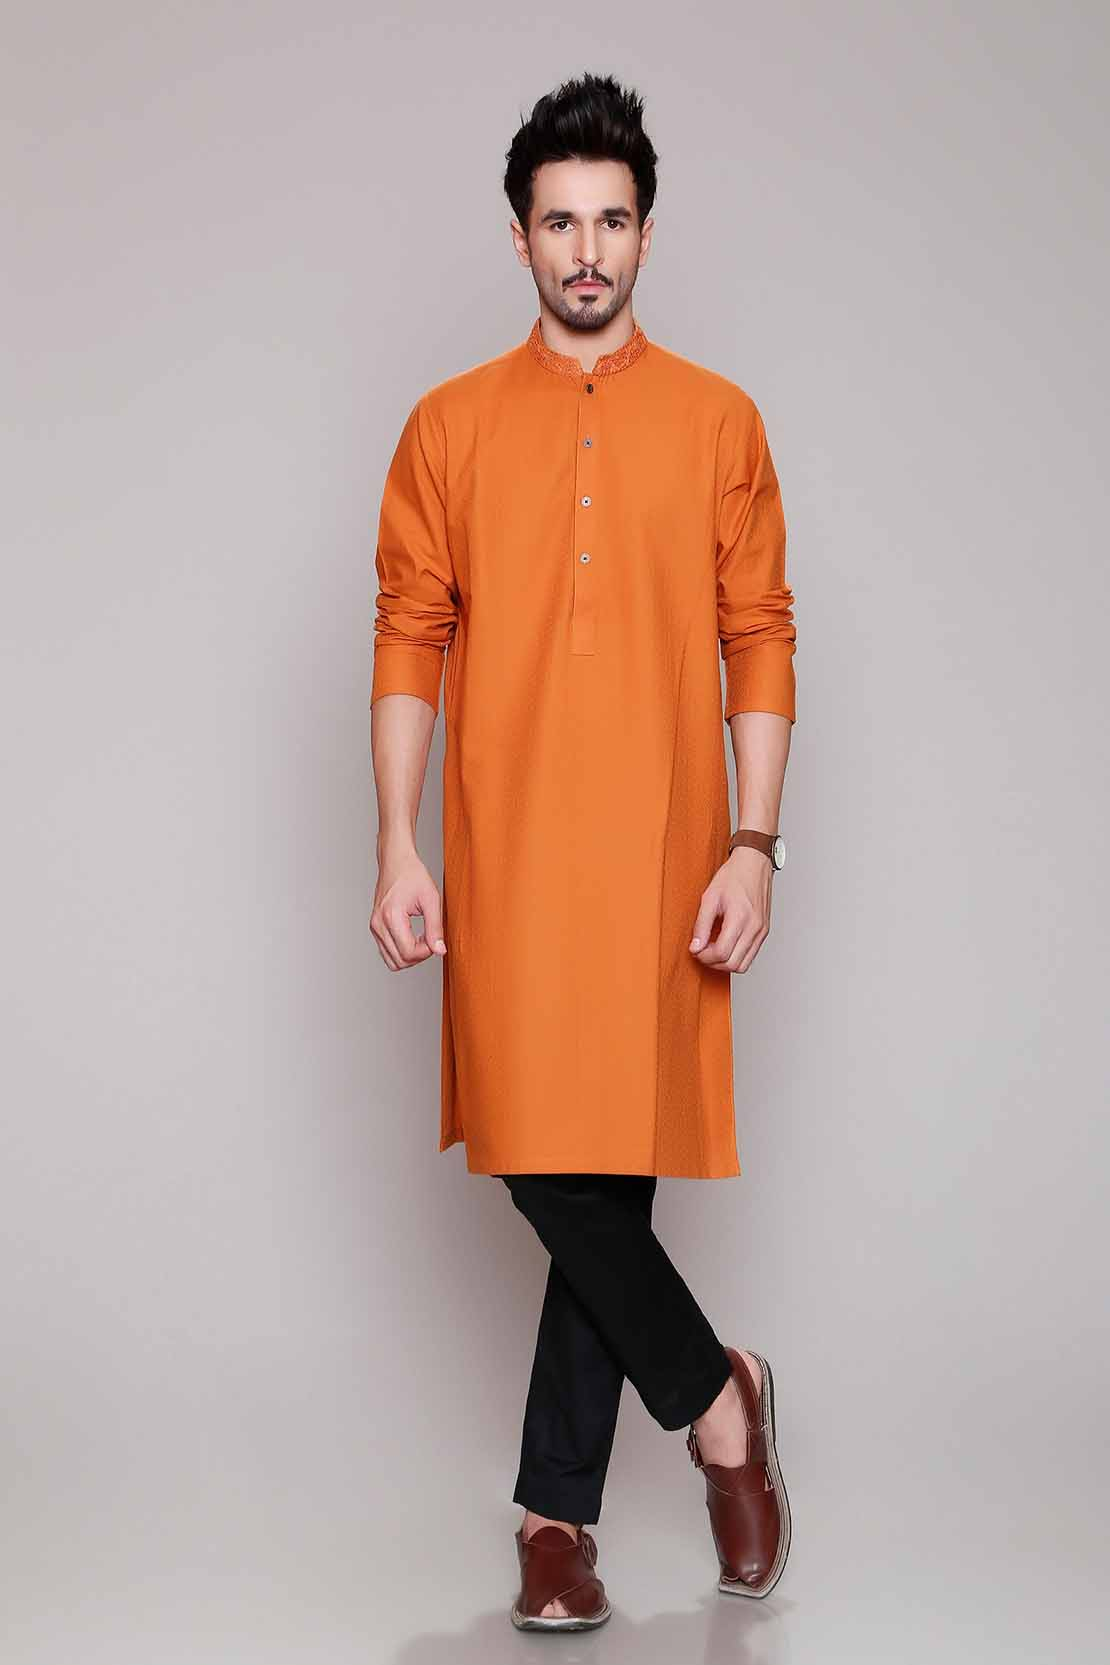 2019 year lifestyle- Kurta men latest styles designs